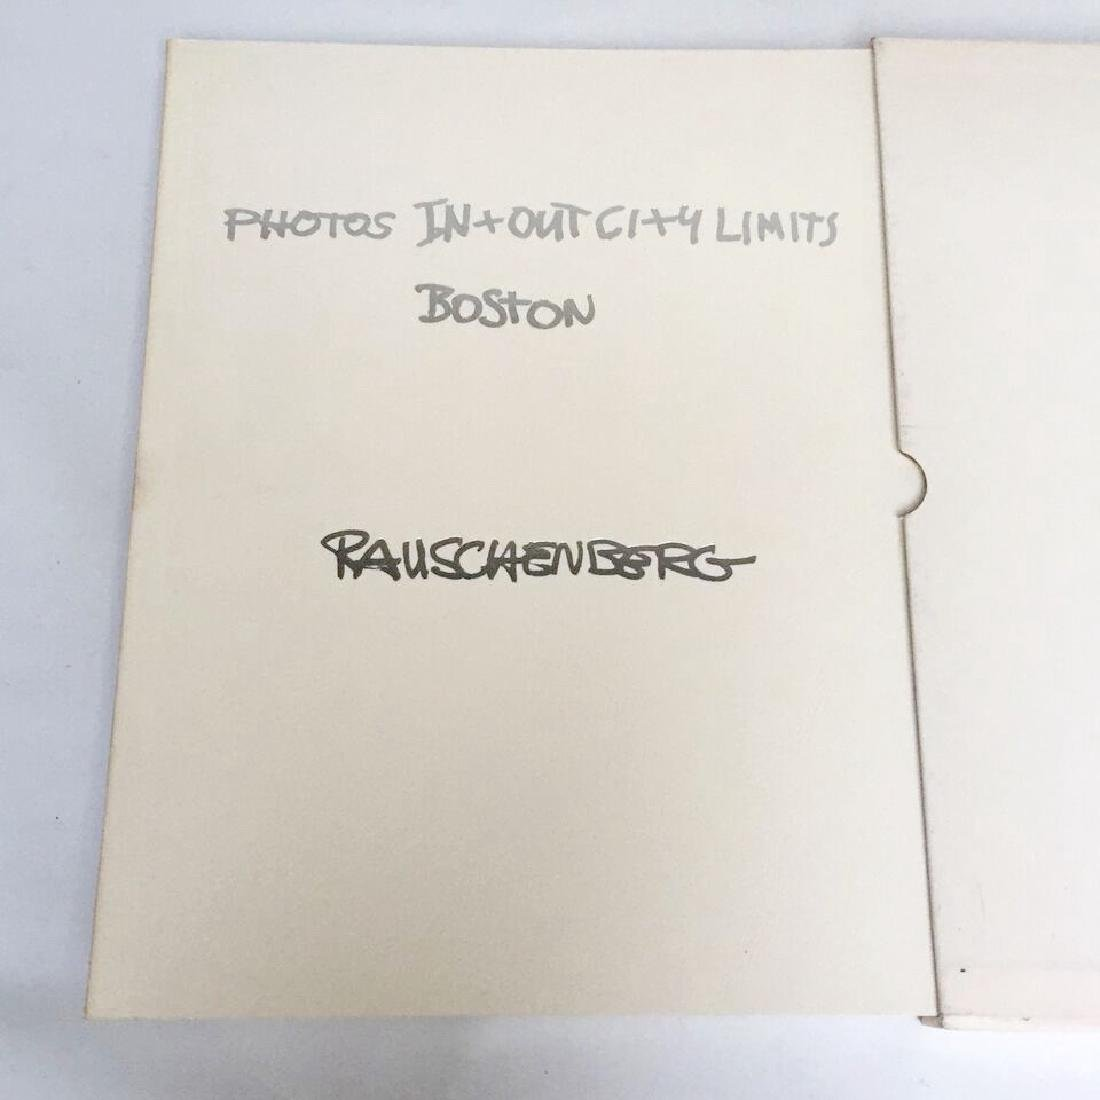 Photos In + Out City Limits Rauschenberg First Edition